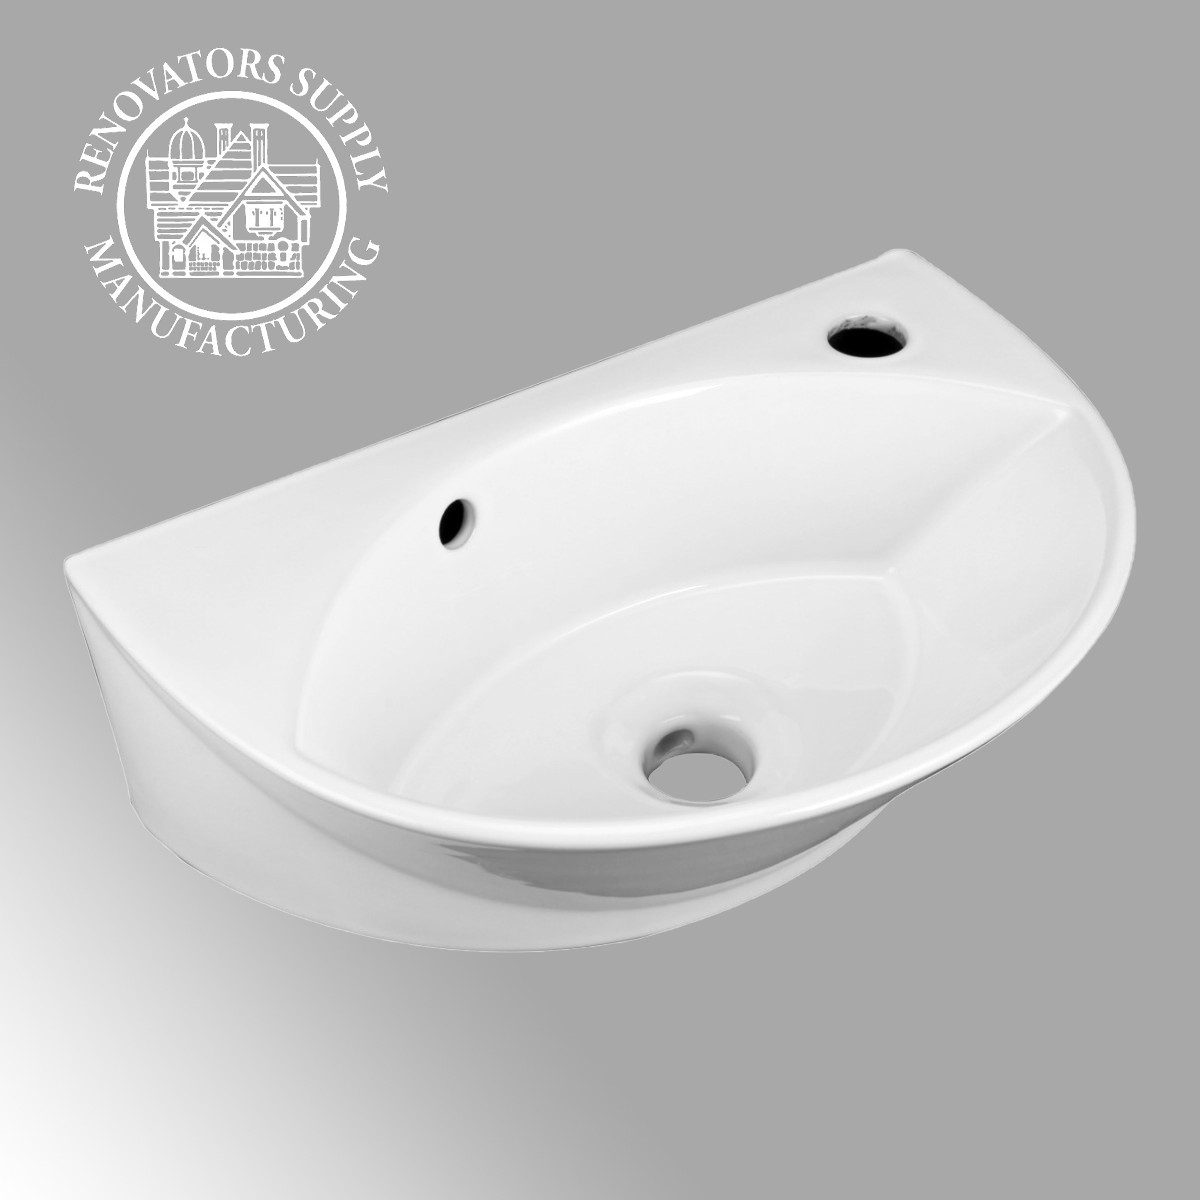 Small Wall Mount Sink For Bathroom Porcelain White With